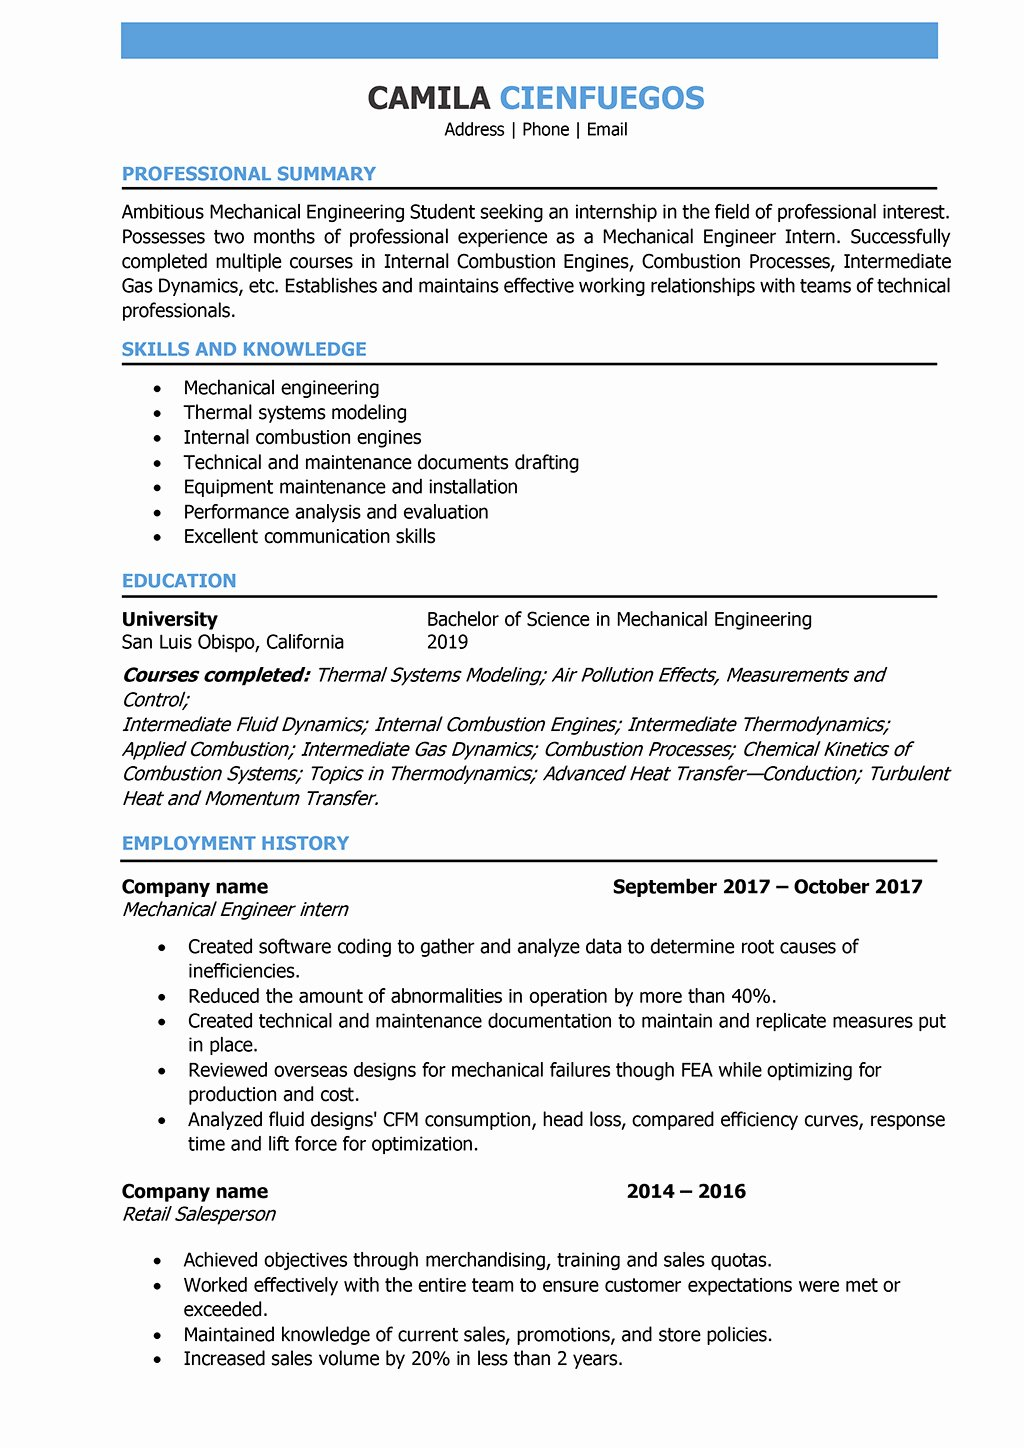 Mechanical Engineer Resume Sample Luxury Mechanical Engineer Resume Samples and Writing Guide